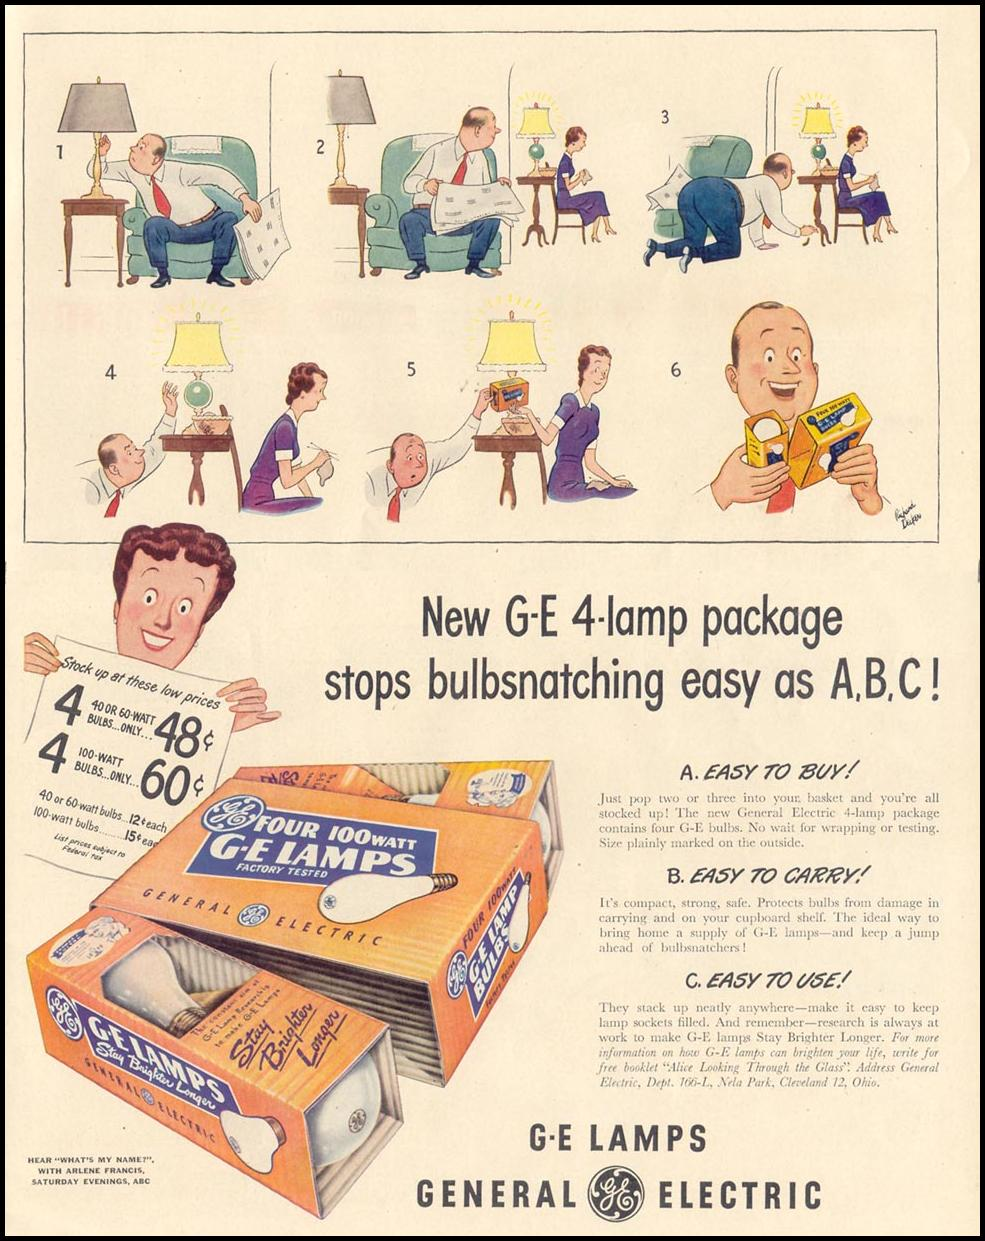 G-E LAMPS